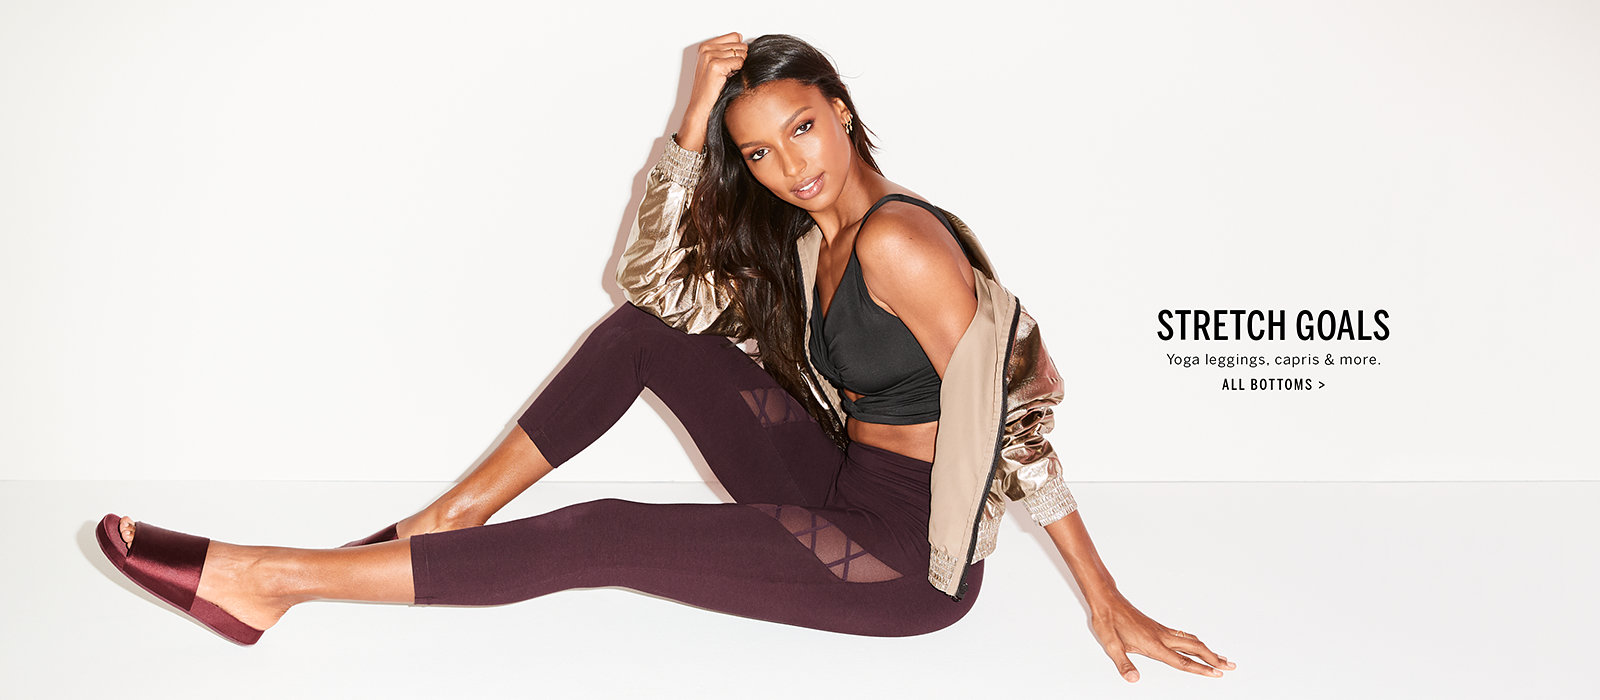 bc3a3ad6381b85 Yoga leggings, capris and more. Click to Shop All bottoms